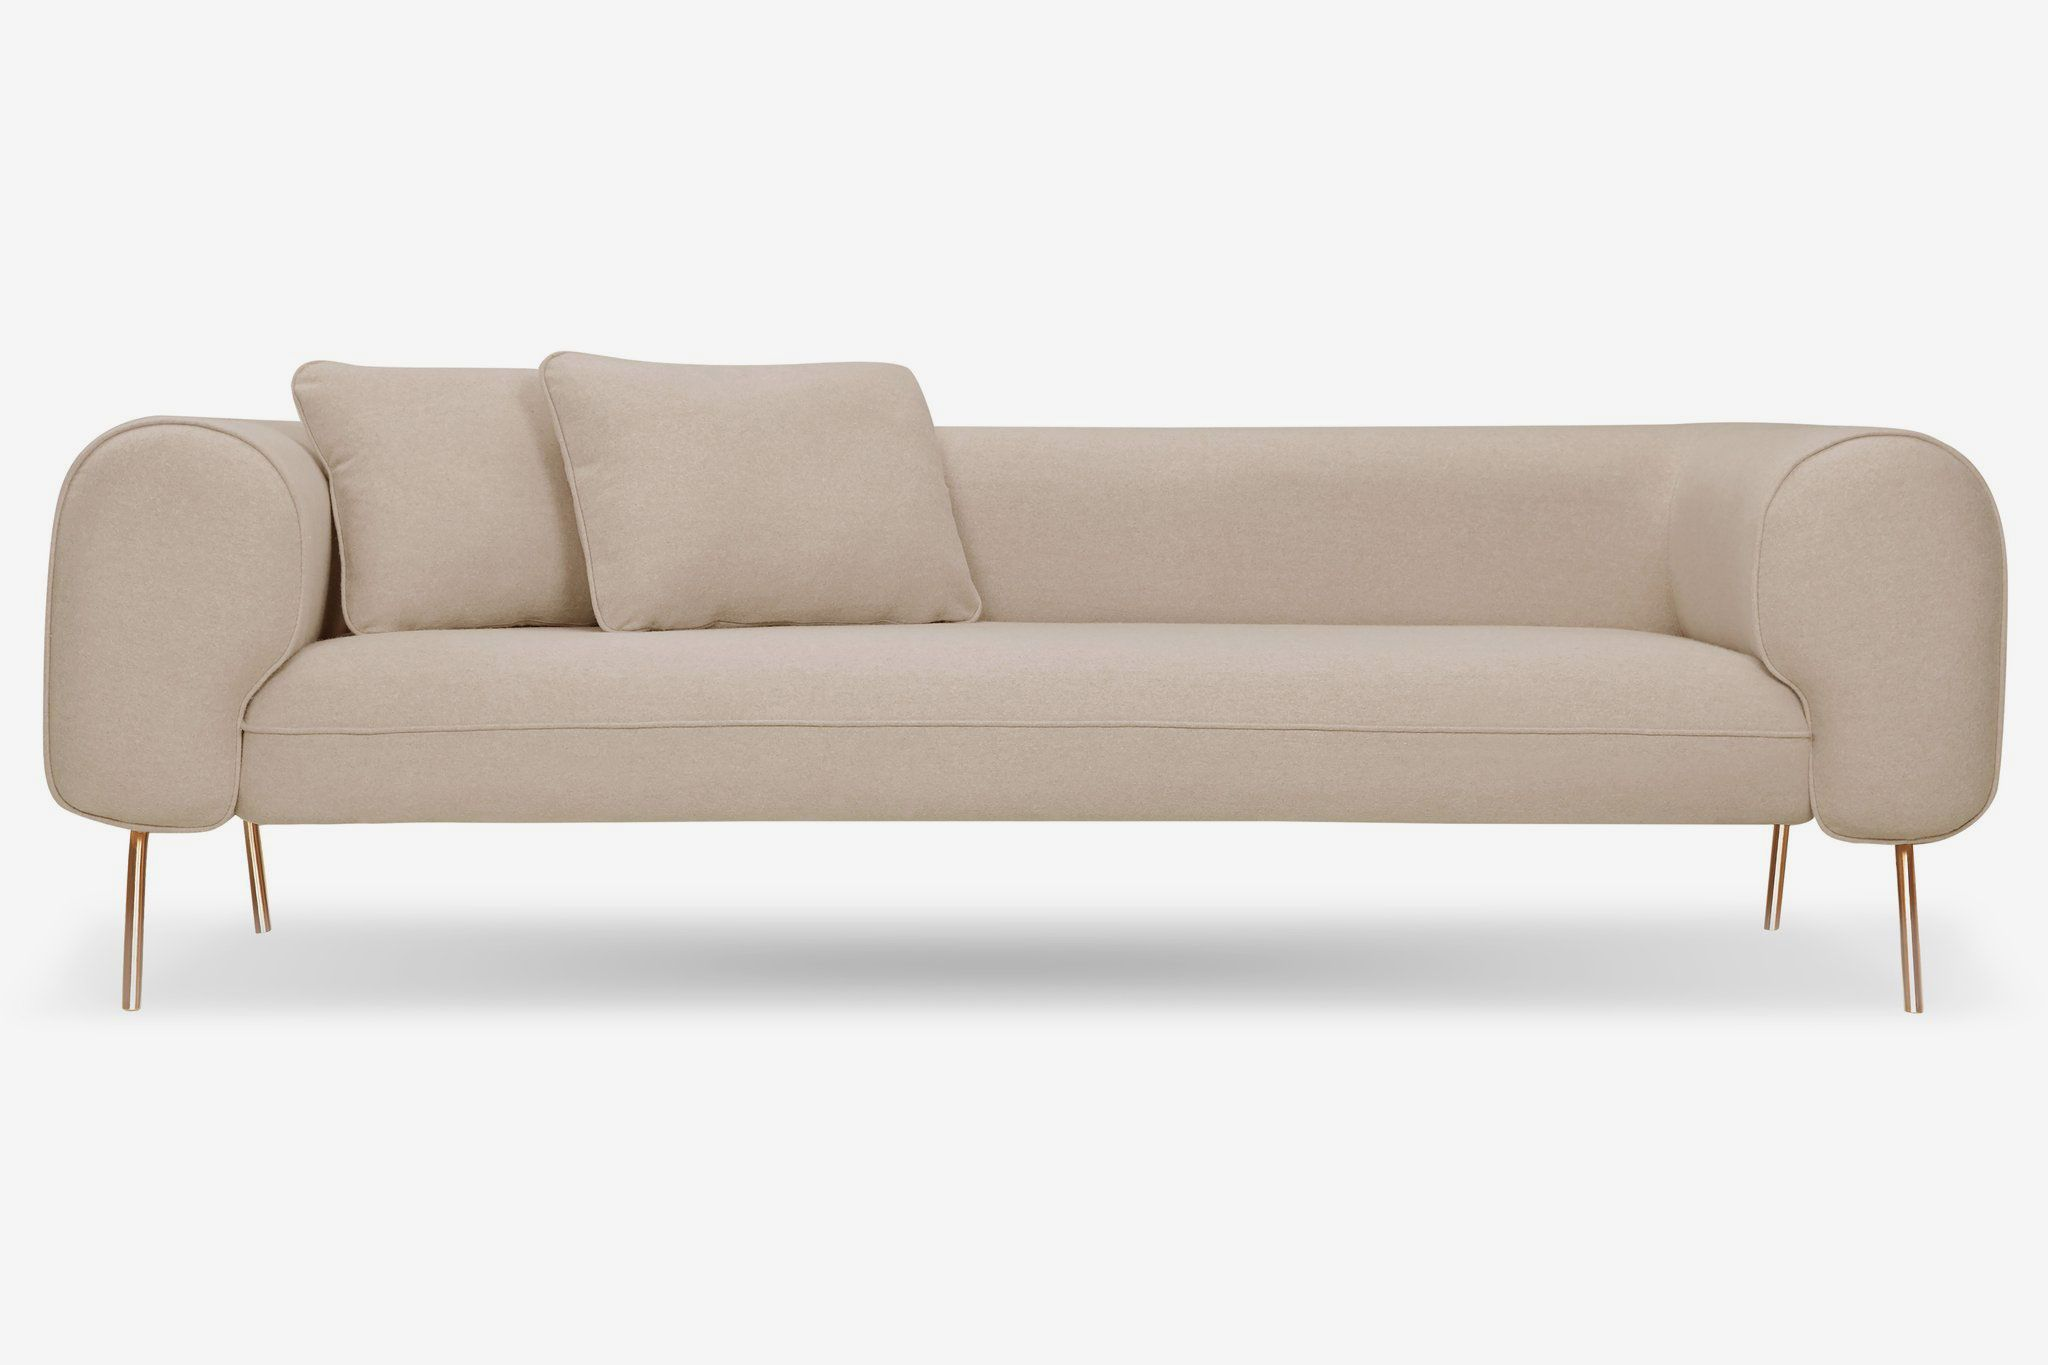 Capsule Home Big Arm Sofa